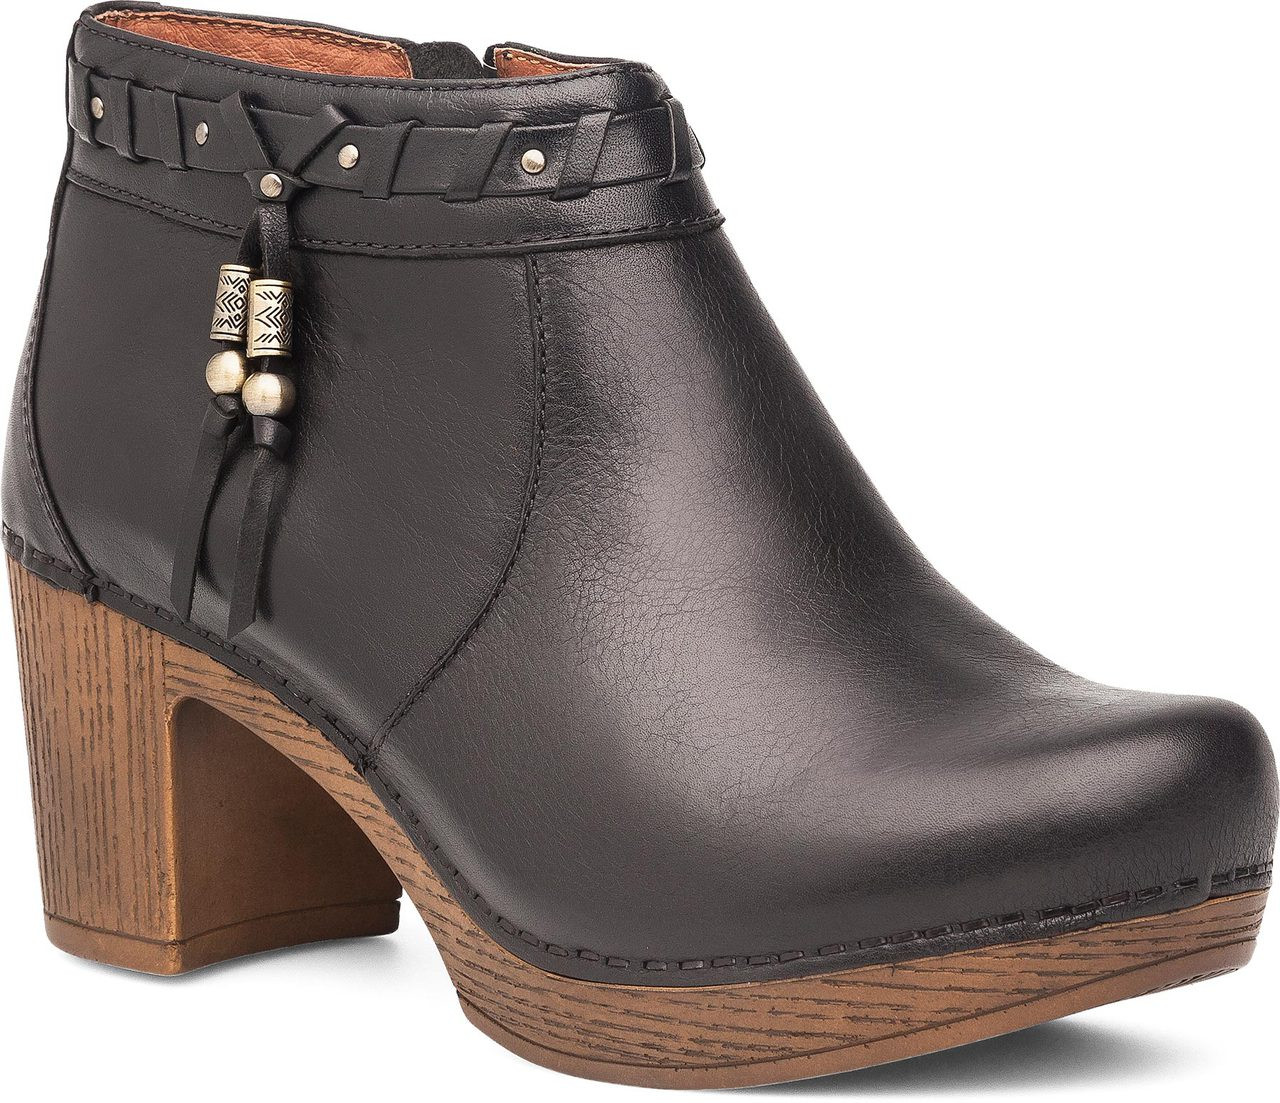 17a954588561 Home · Women s Clearance Shoes · Boots  Dansko Dabney. Black Burnished Full  Grain Leather